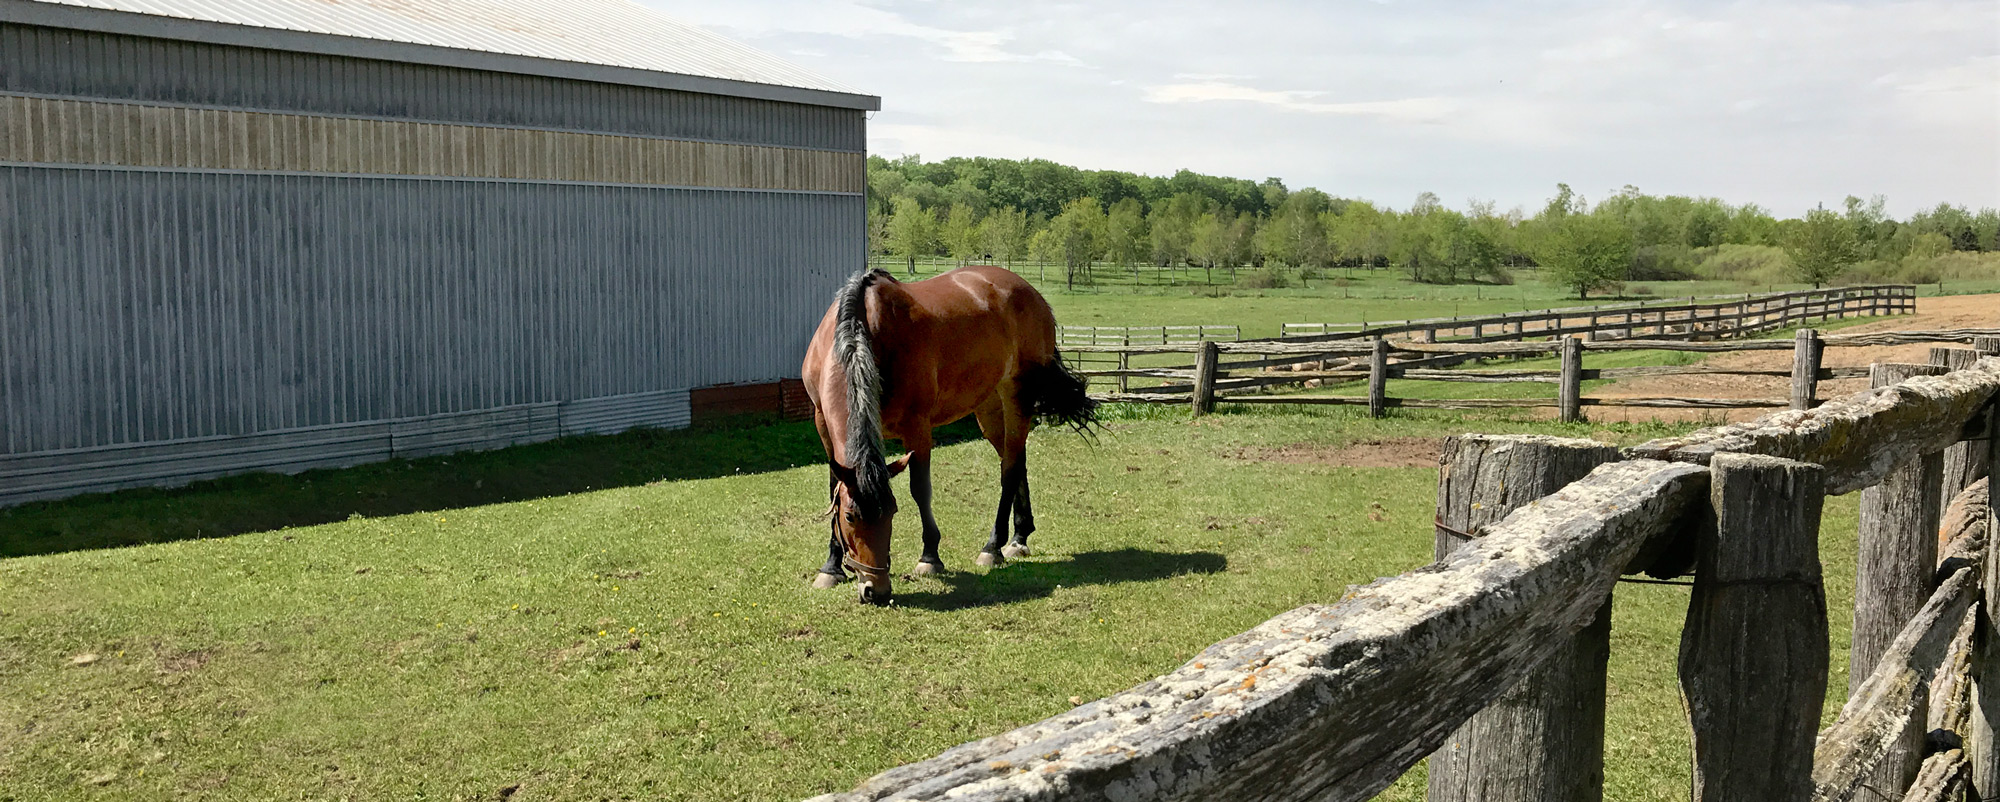 Moondance-equine-assisted-therapy-field4b.jpg